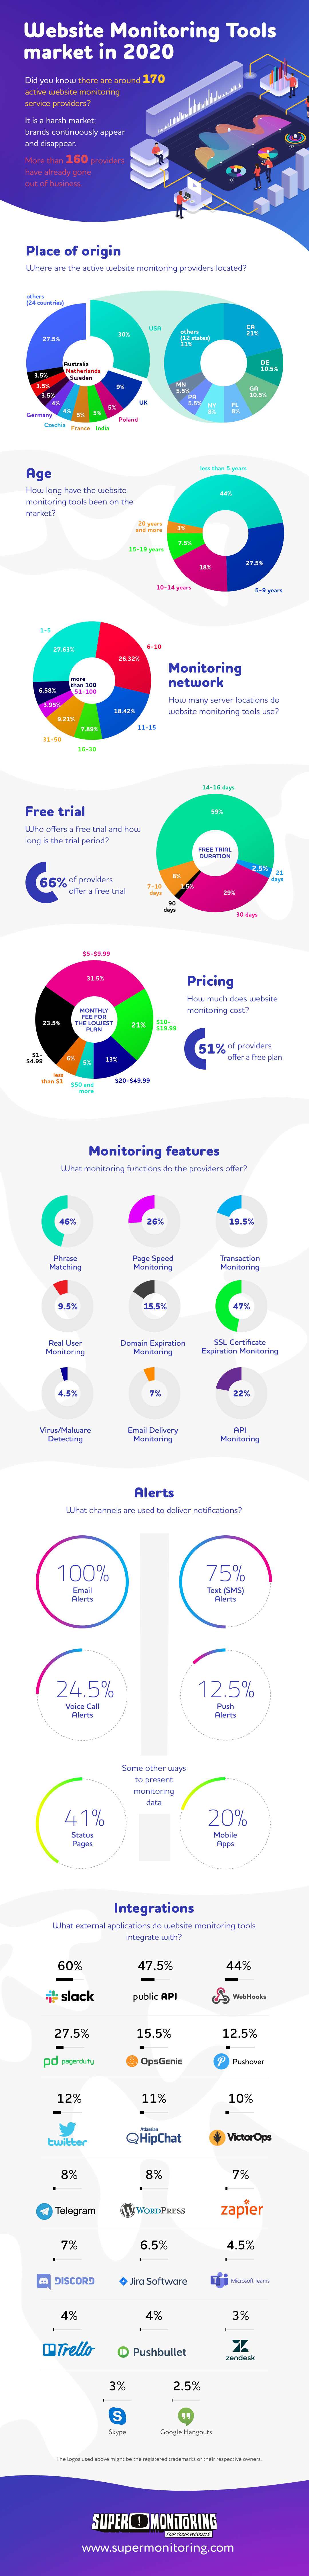 Website Monitoring Tools market in 2020 (infographic)